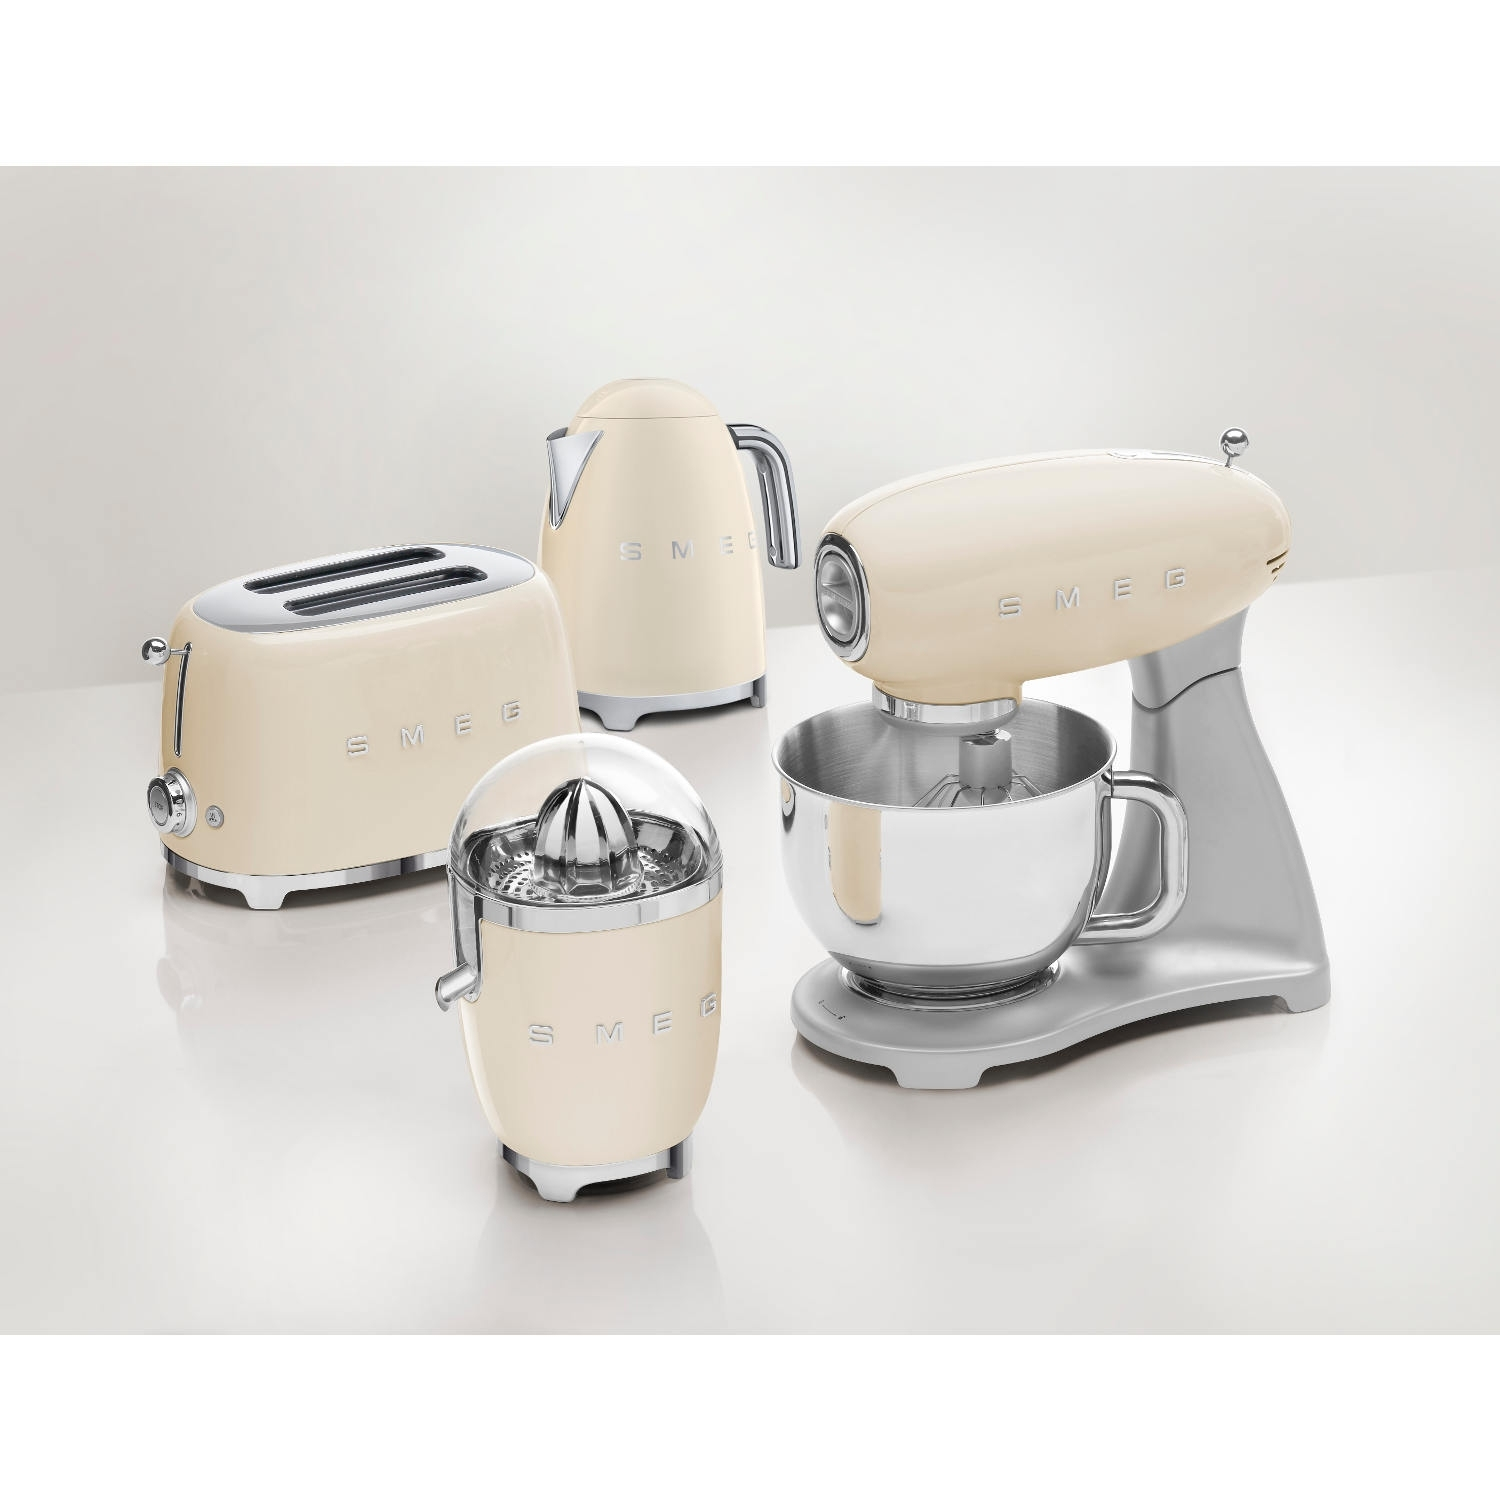 Smeg 2 Slice Toaster - Cream - 4